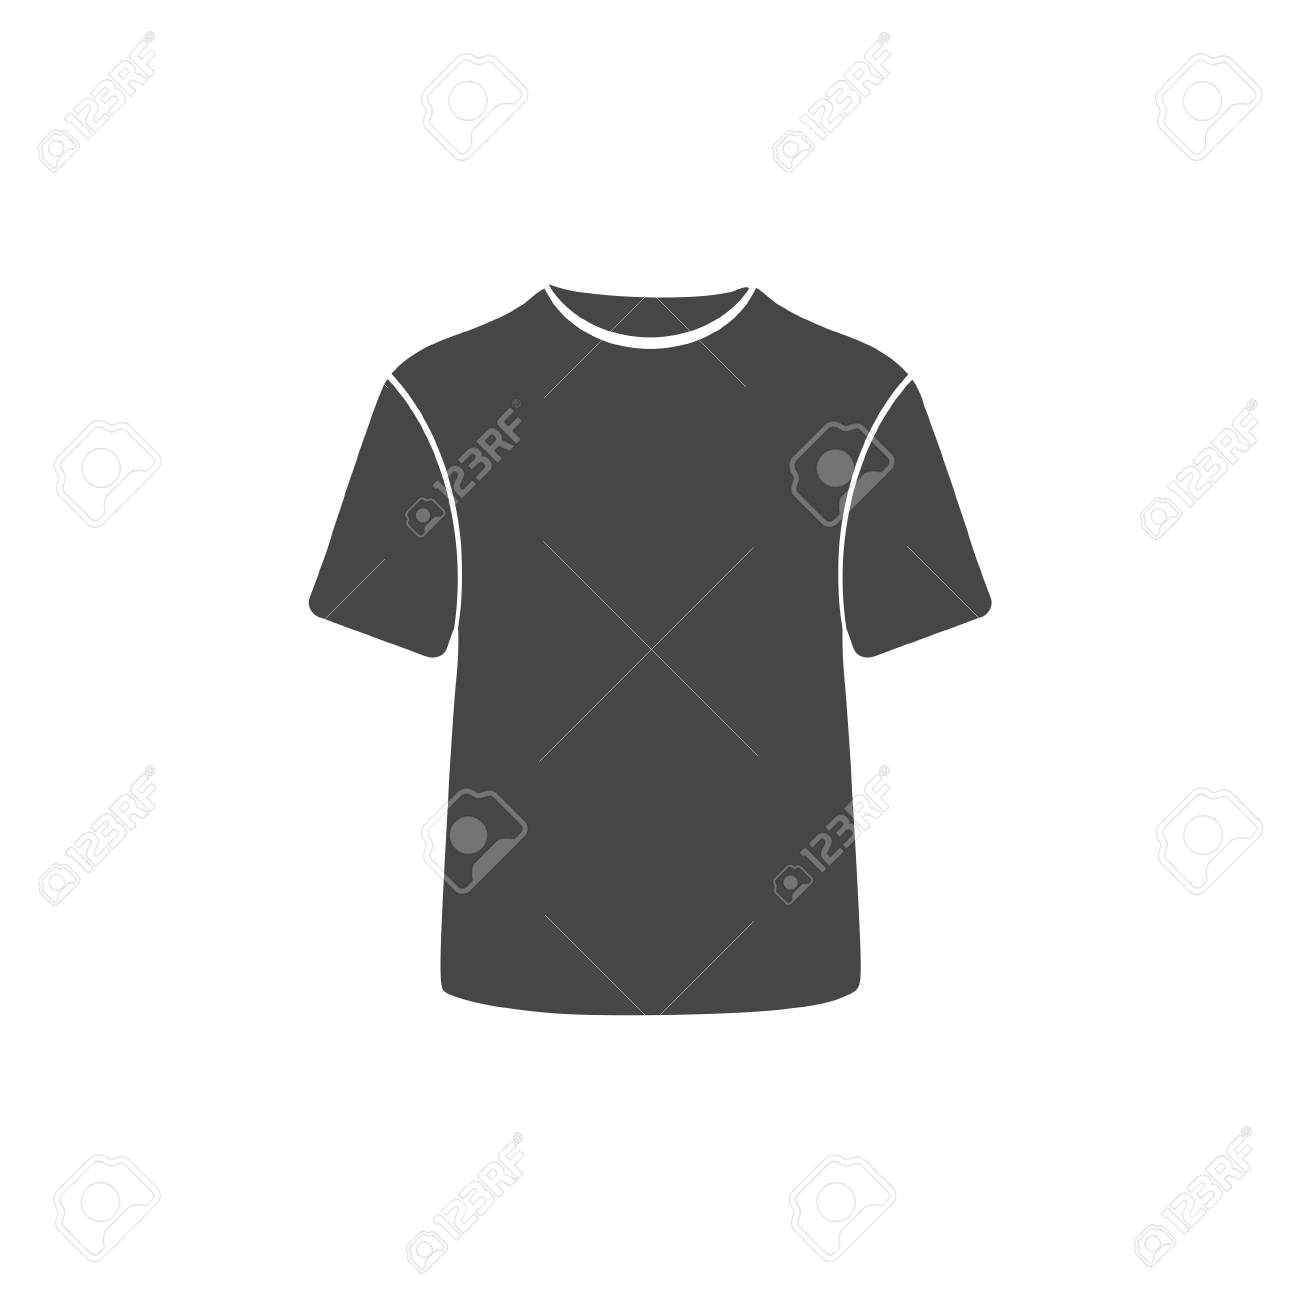 t shirt vector icon vector blank tshirt icon symbol royalty free cliparts vectors and stock illustration image 66804572 123rf com